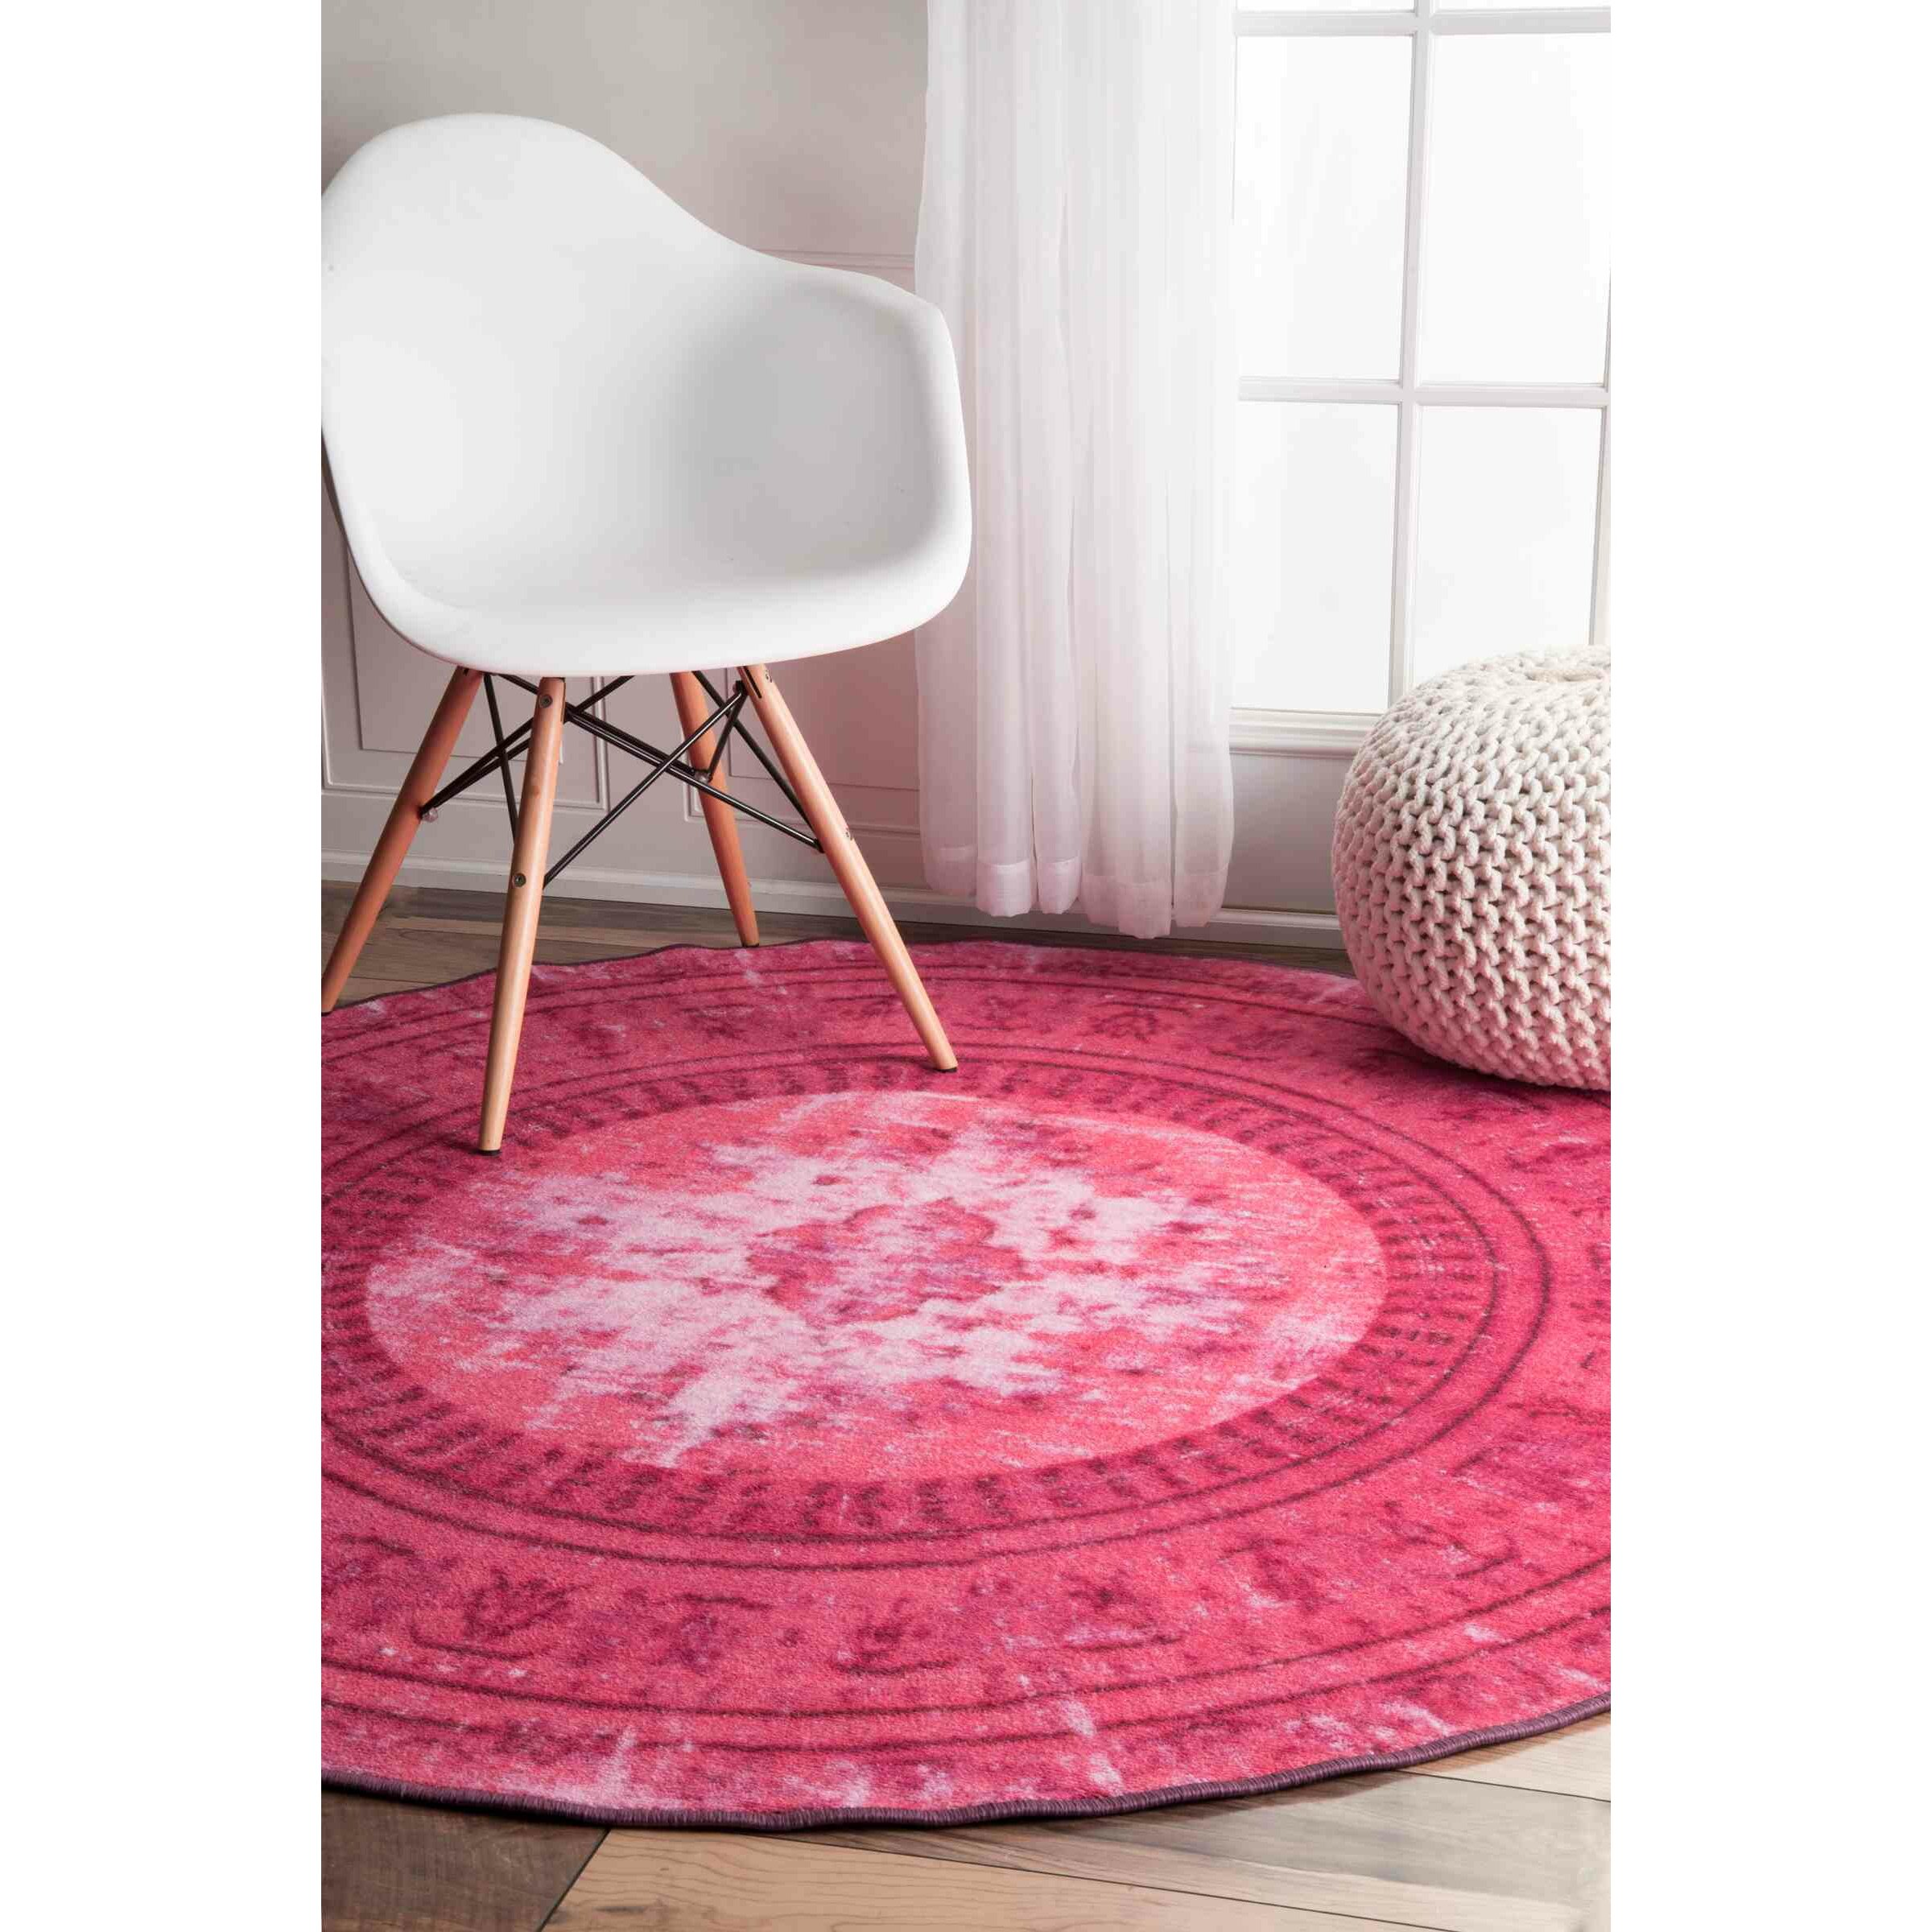 Hawkesbury Overdyed Style Harper Pink Floral Area Rug